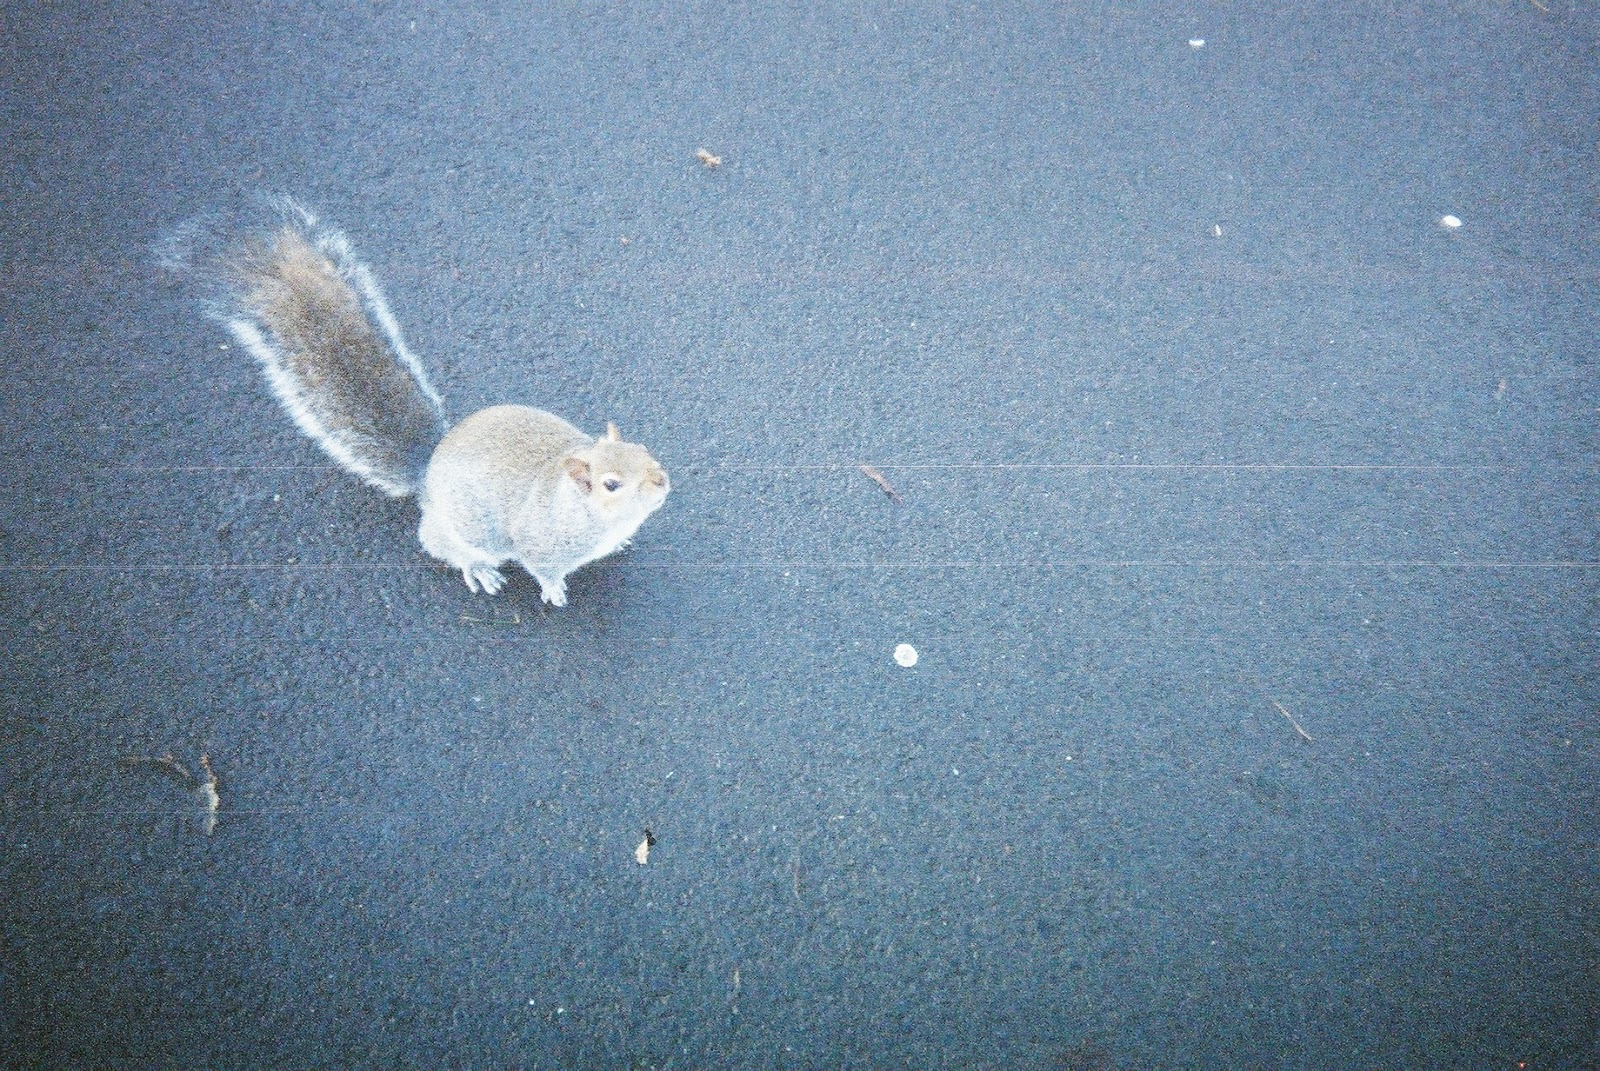 A squirrel on a park path, looking up near to the camera.